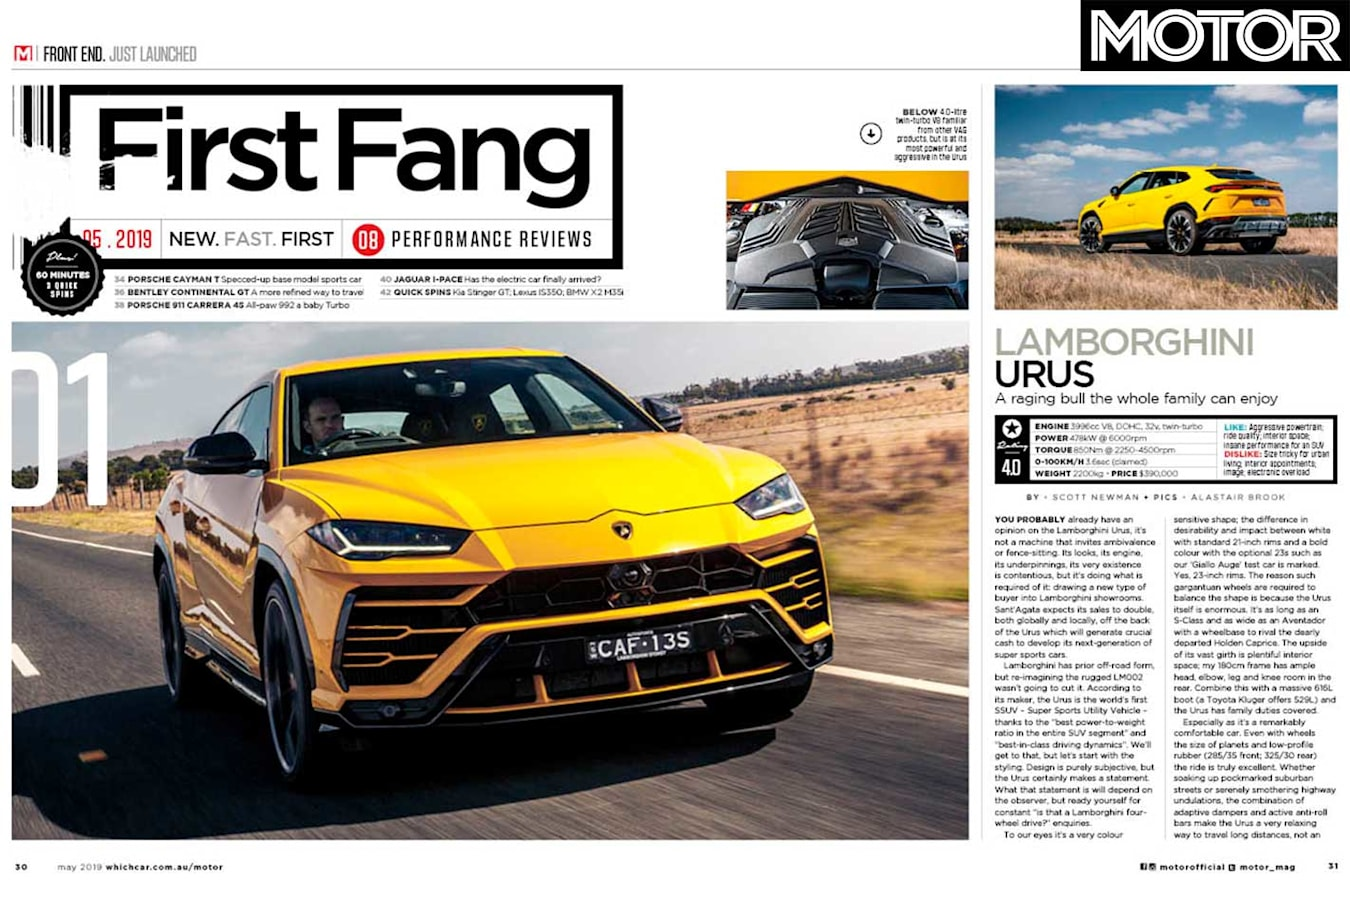 MOTOR Magazine May 2019 Issue Preview Features Jpg